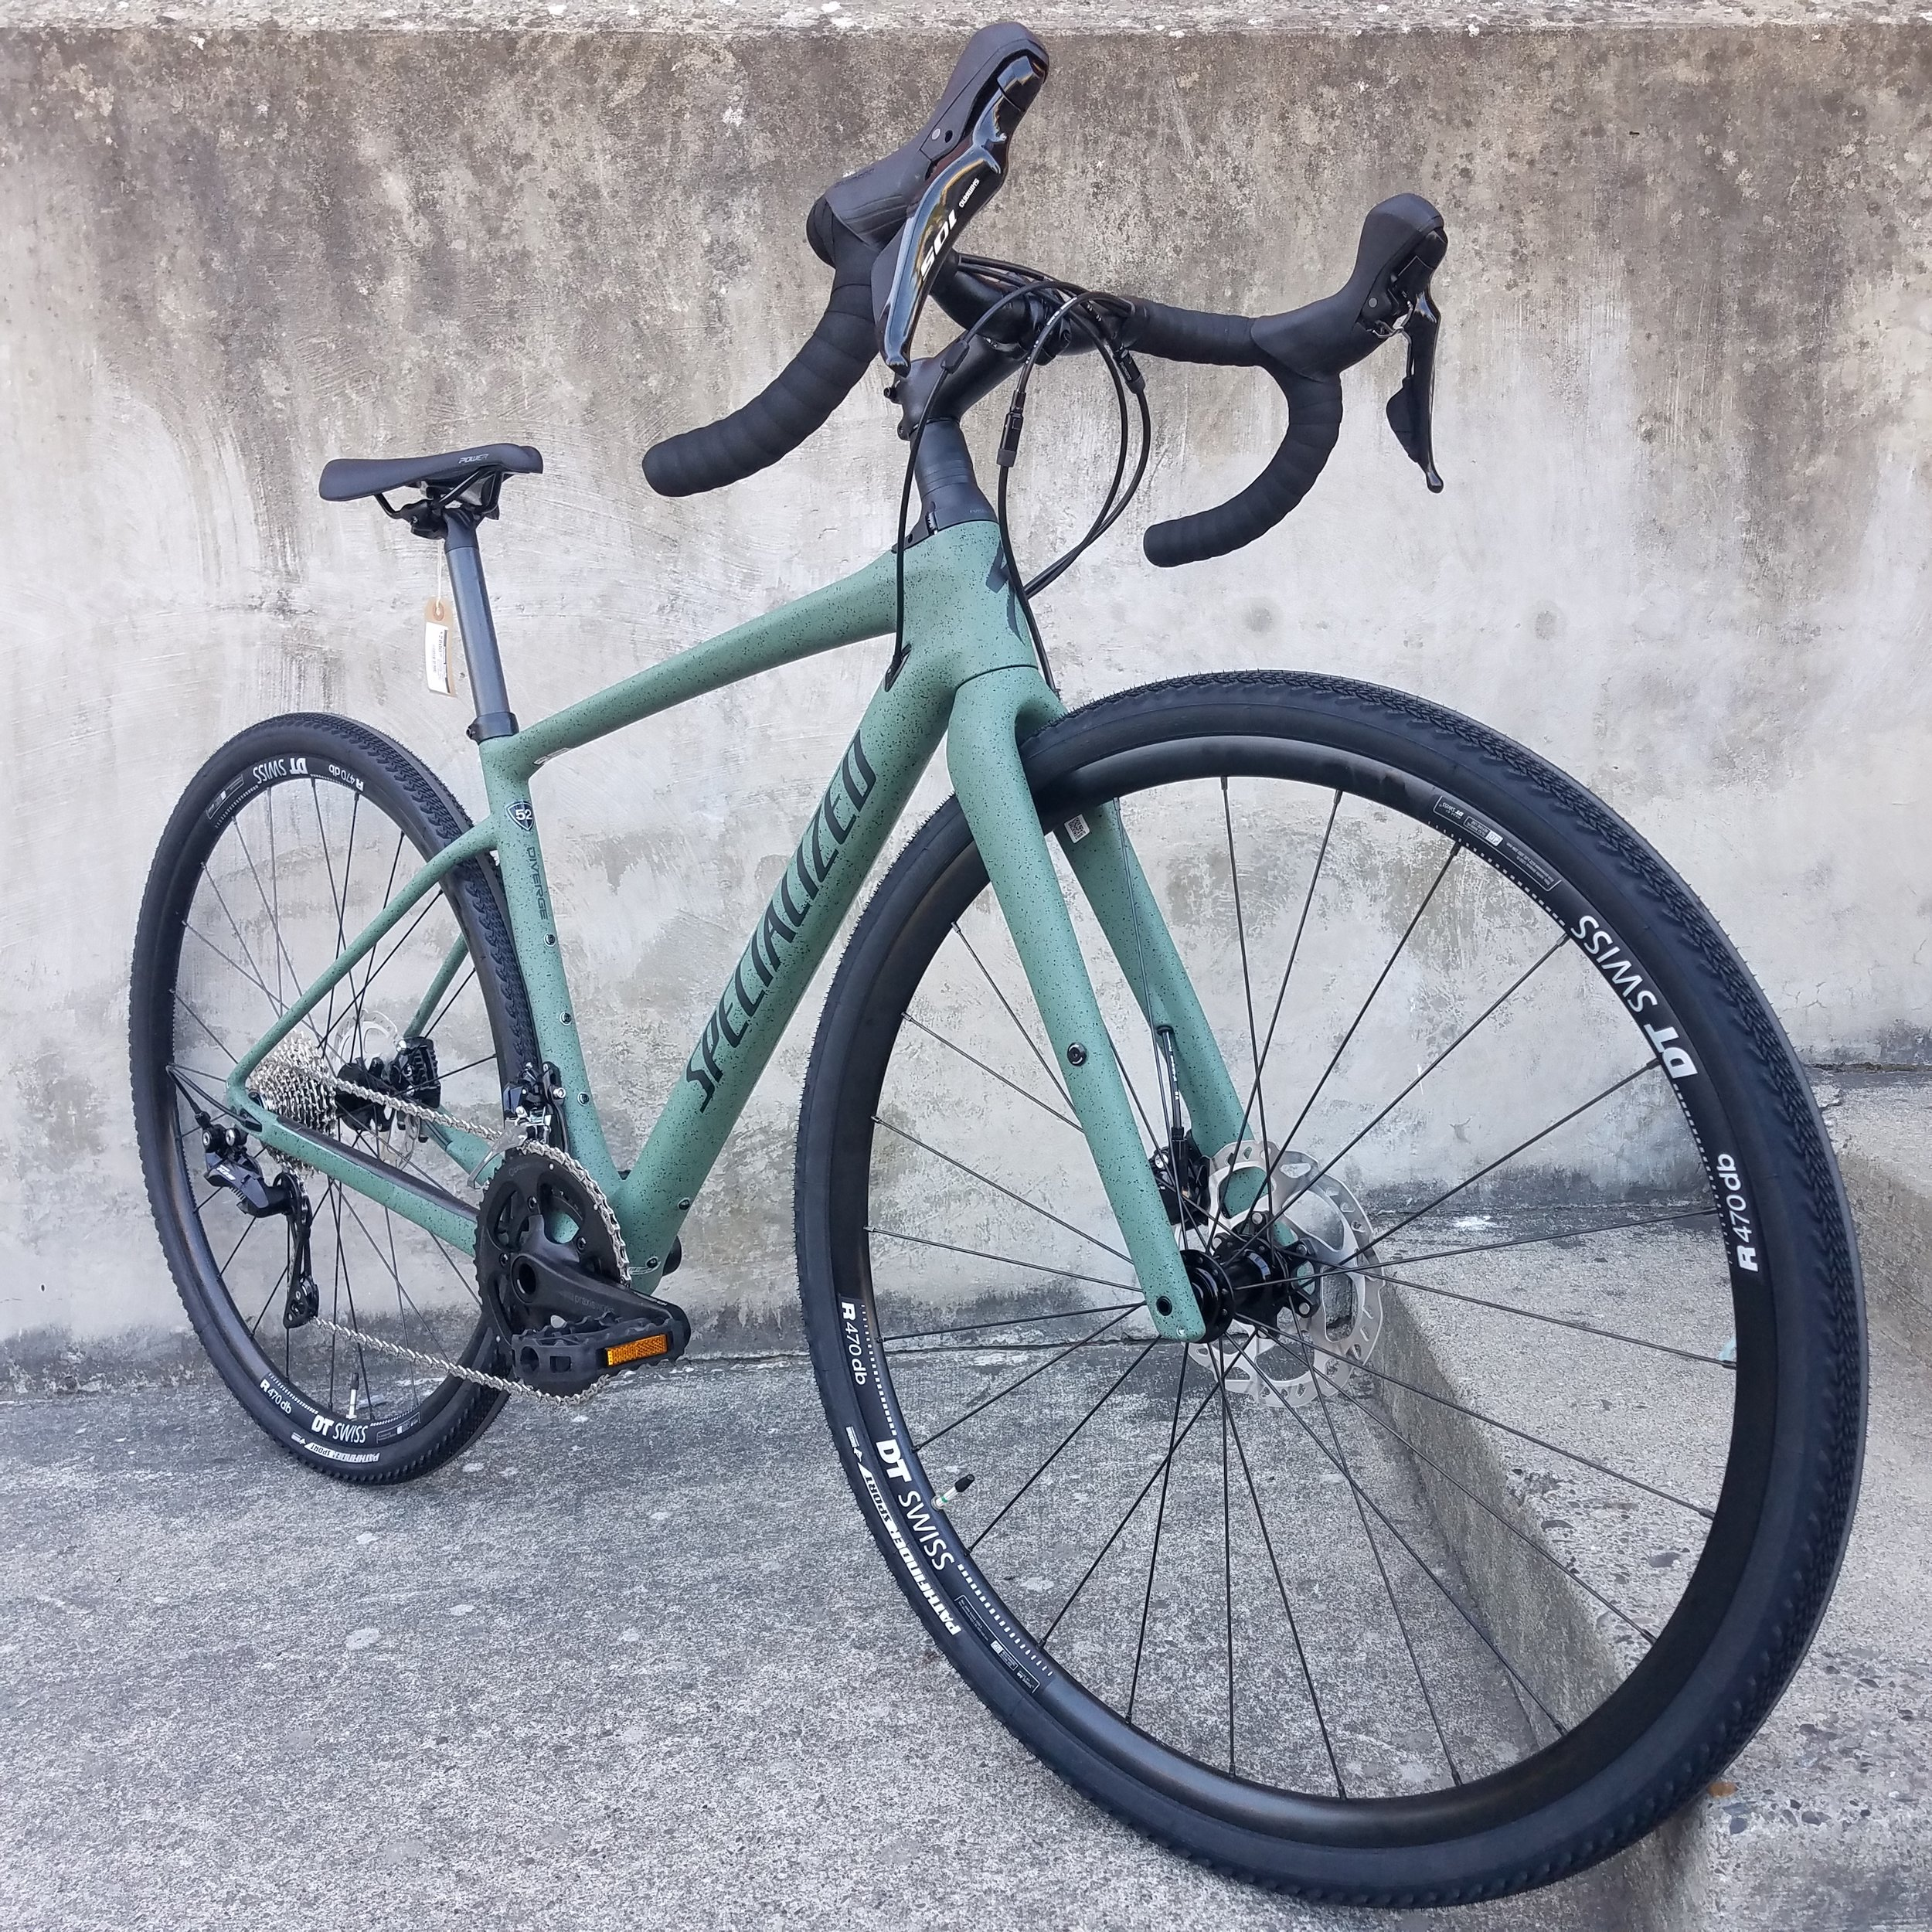 Specialized DIVERGE SPORT CARBON - $2,800Sage Green/BlackSizes Available: 52cmWe are happy to order you any size or model you need.